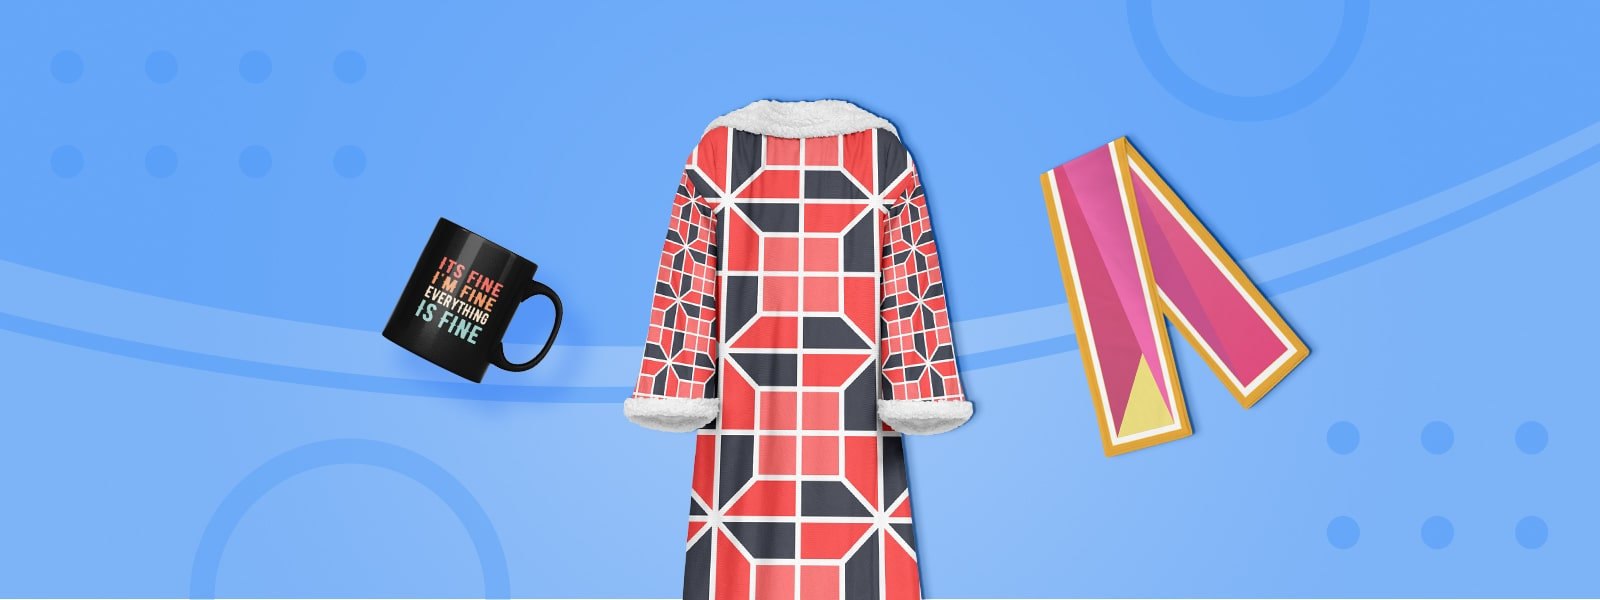 New Products Available: Sleeve Blanket, Fleece Scarf, Mugs